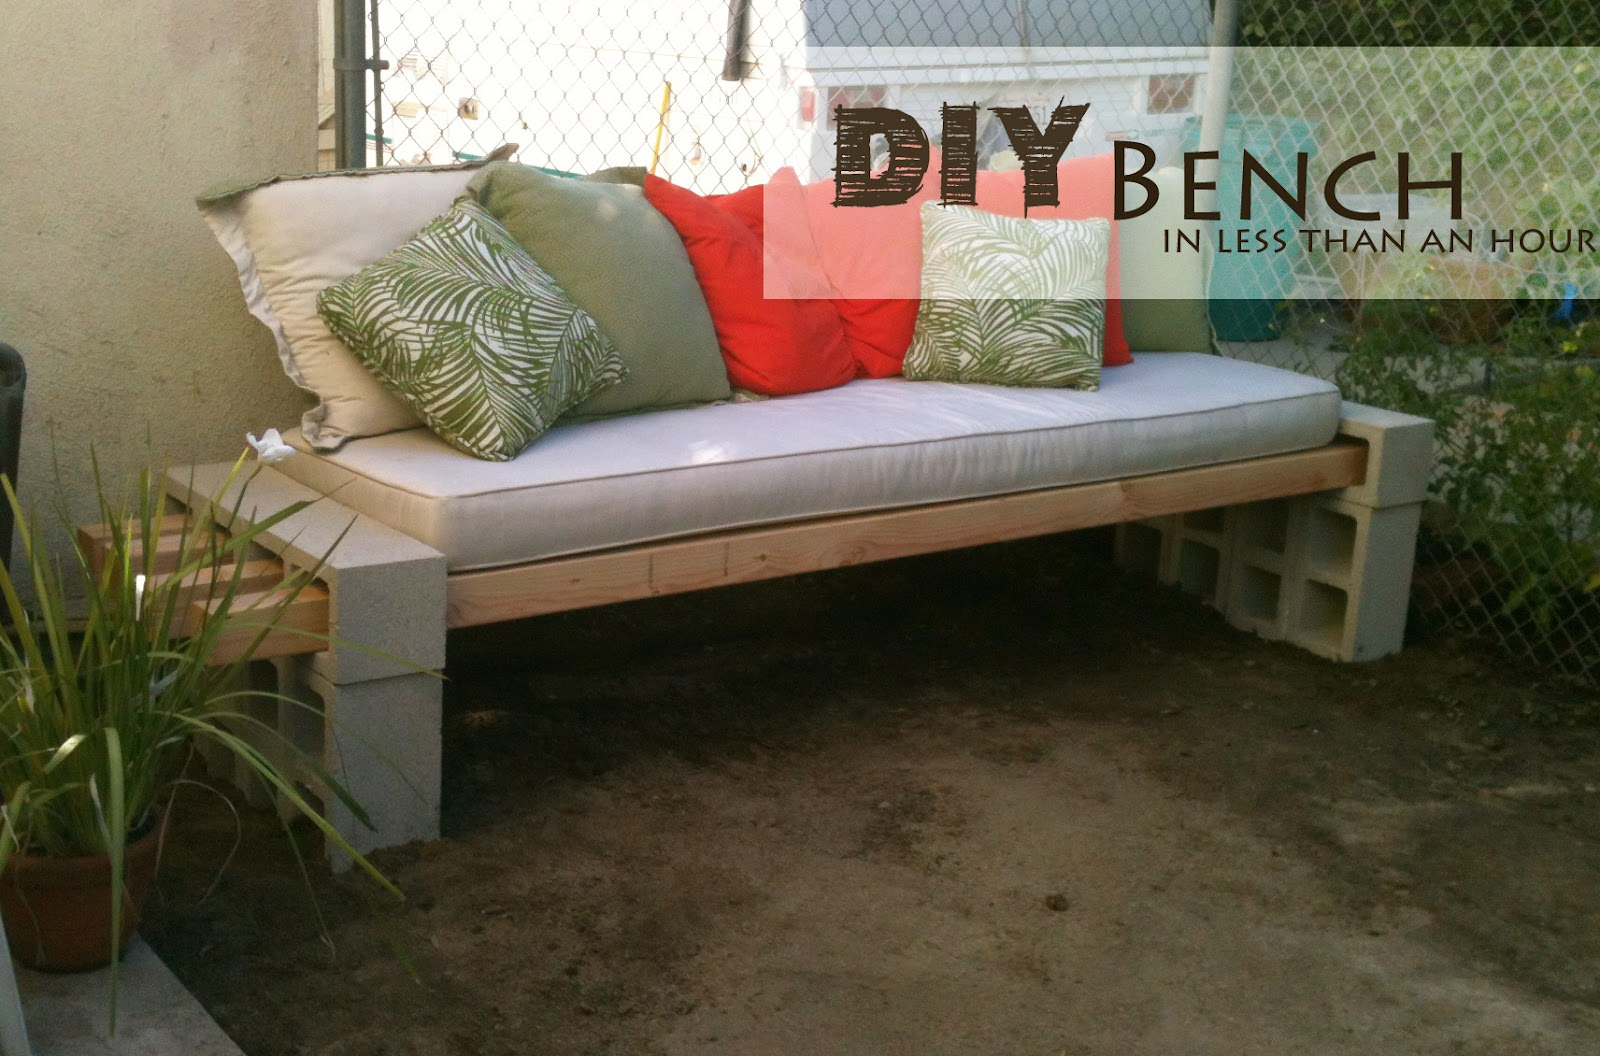 Refresh the outdoor areas with smart diy projects on a budget solutioingenieria Images